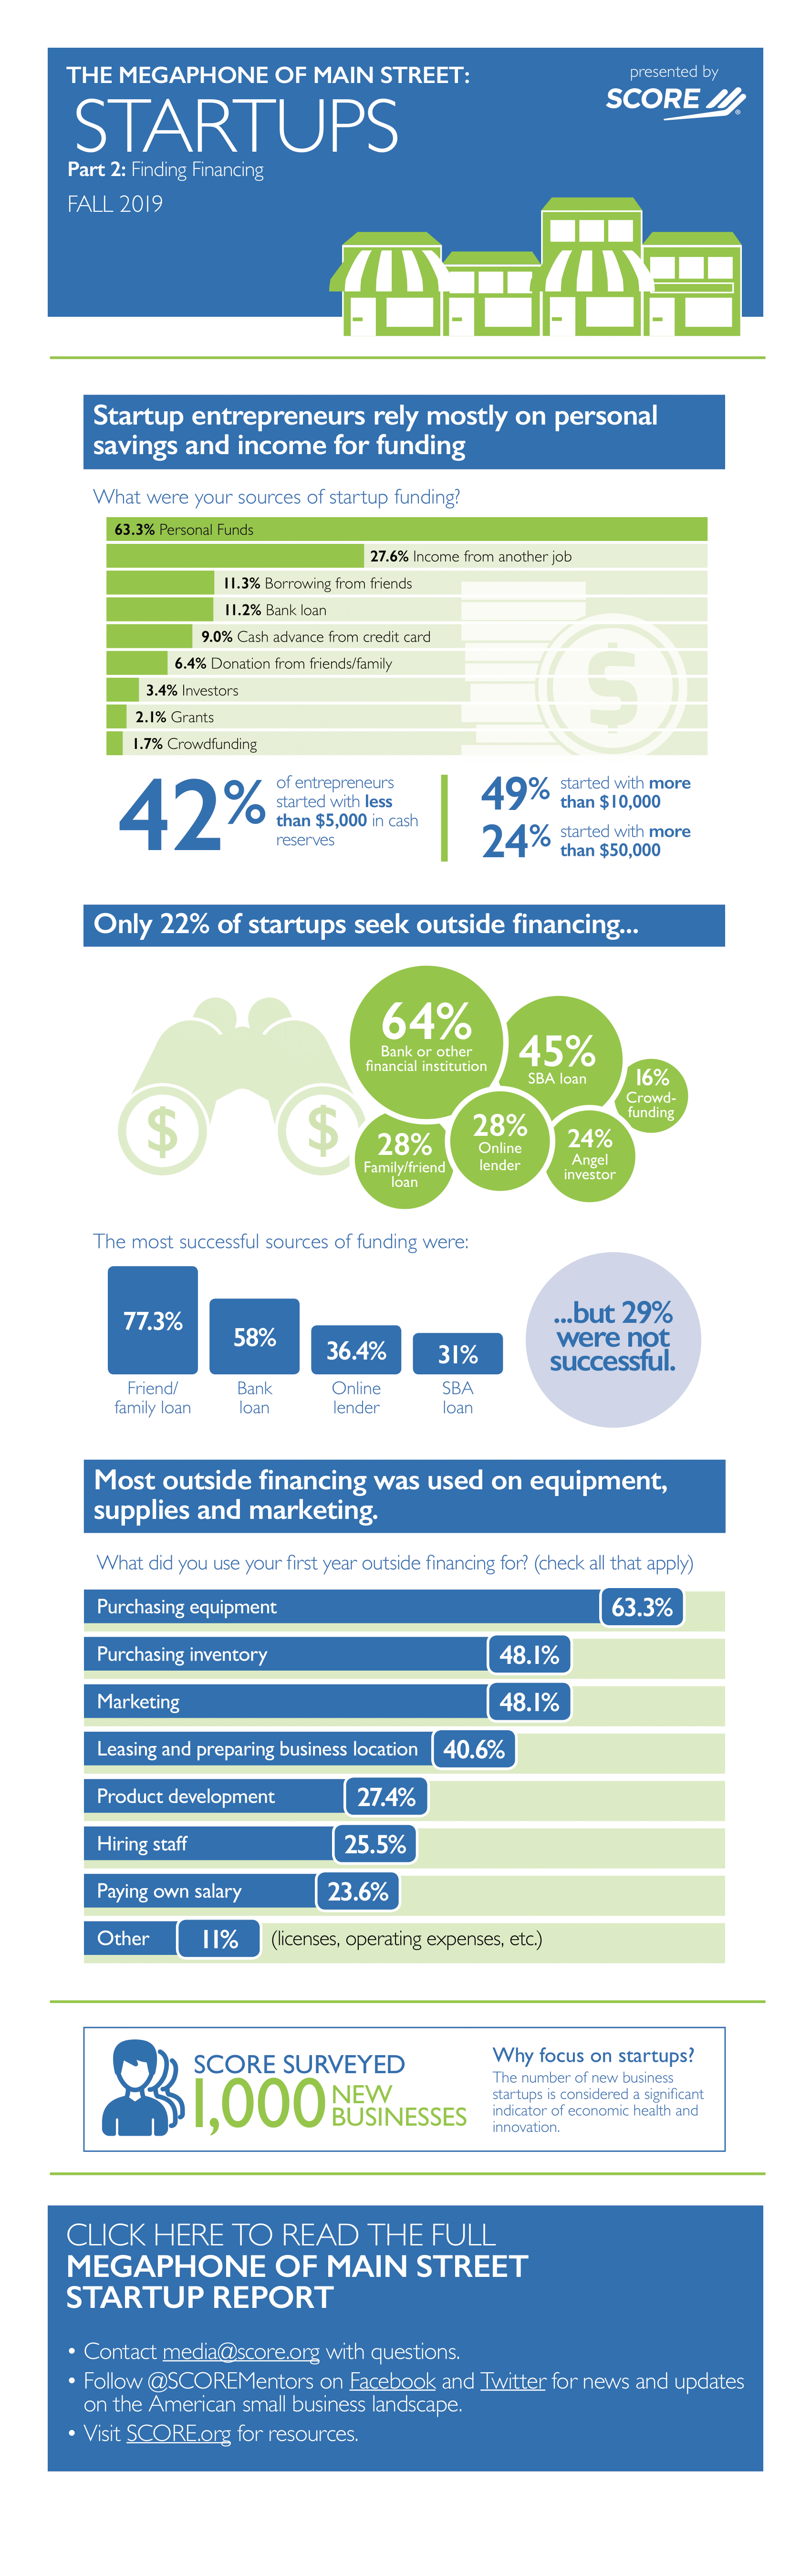 SCORE-Megaphone-Main-Street-Startups-Infographic-Finding-Financing-1